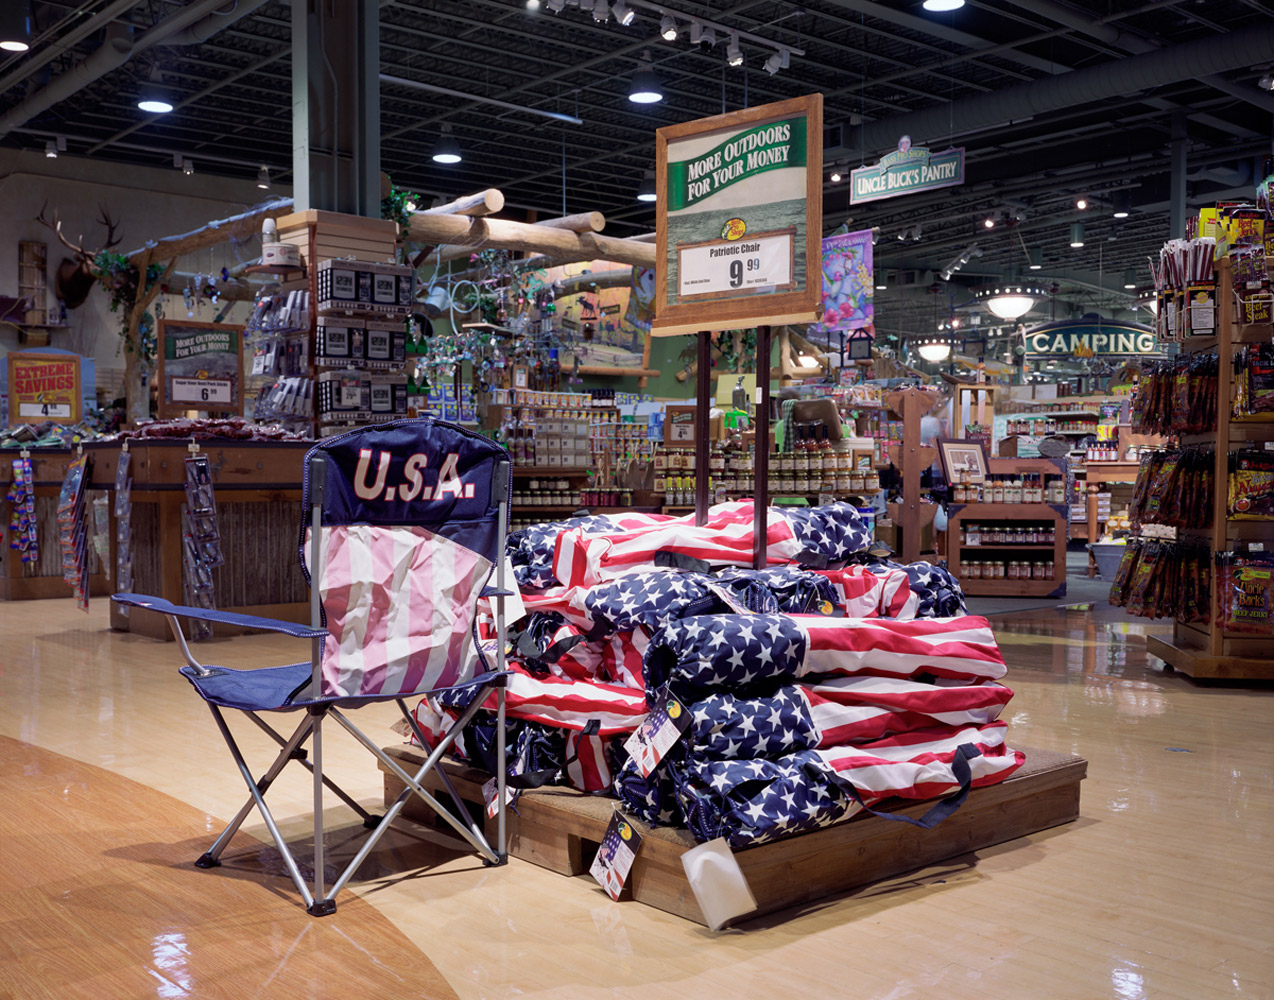 Gurnee, IL, 2005                                Also tied to political controversy, this was during the debate over the first flag-draped coffins returning from Iraq. It was incredulous to see this display so eerily mimicking that topic. Unrelated is the concept of the $9.99 price point, seemingly used for ideological goods.